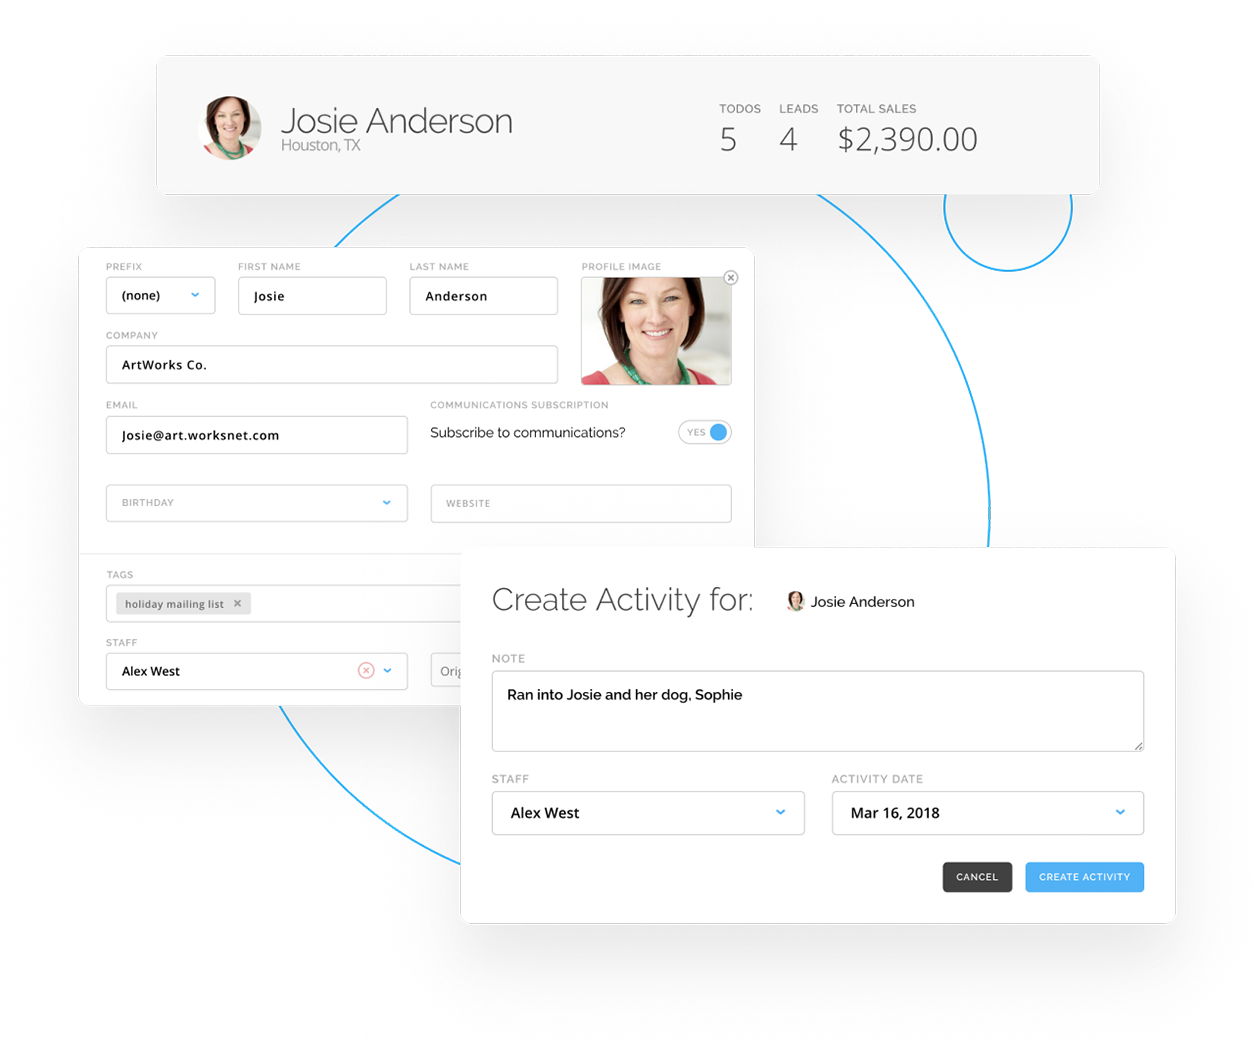 Contact records in ArtCloud Manager